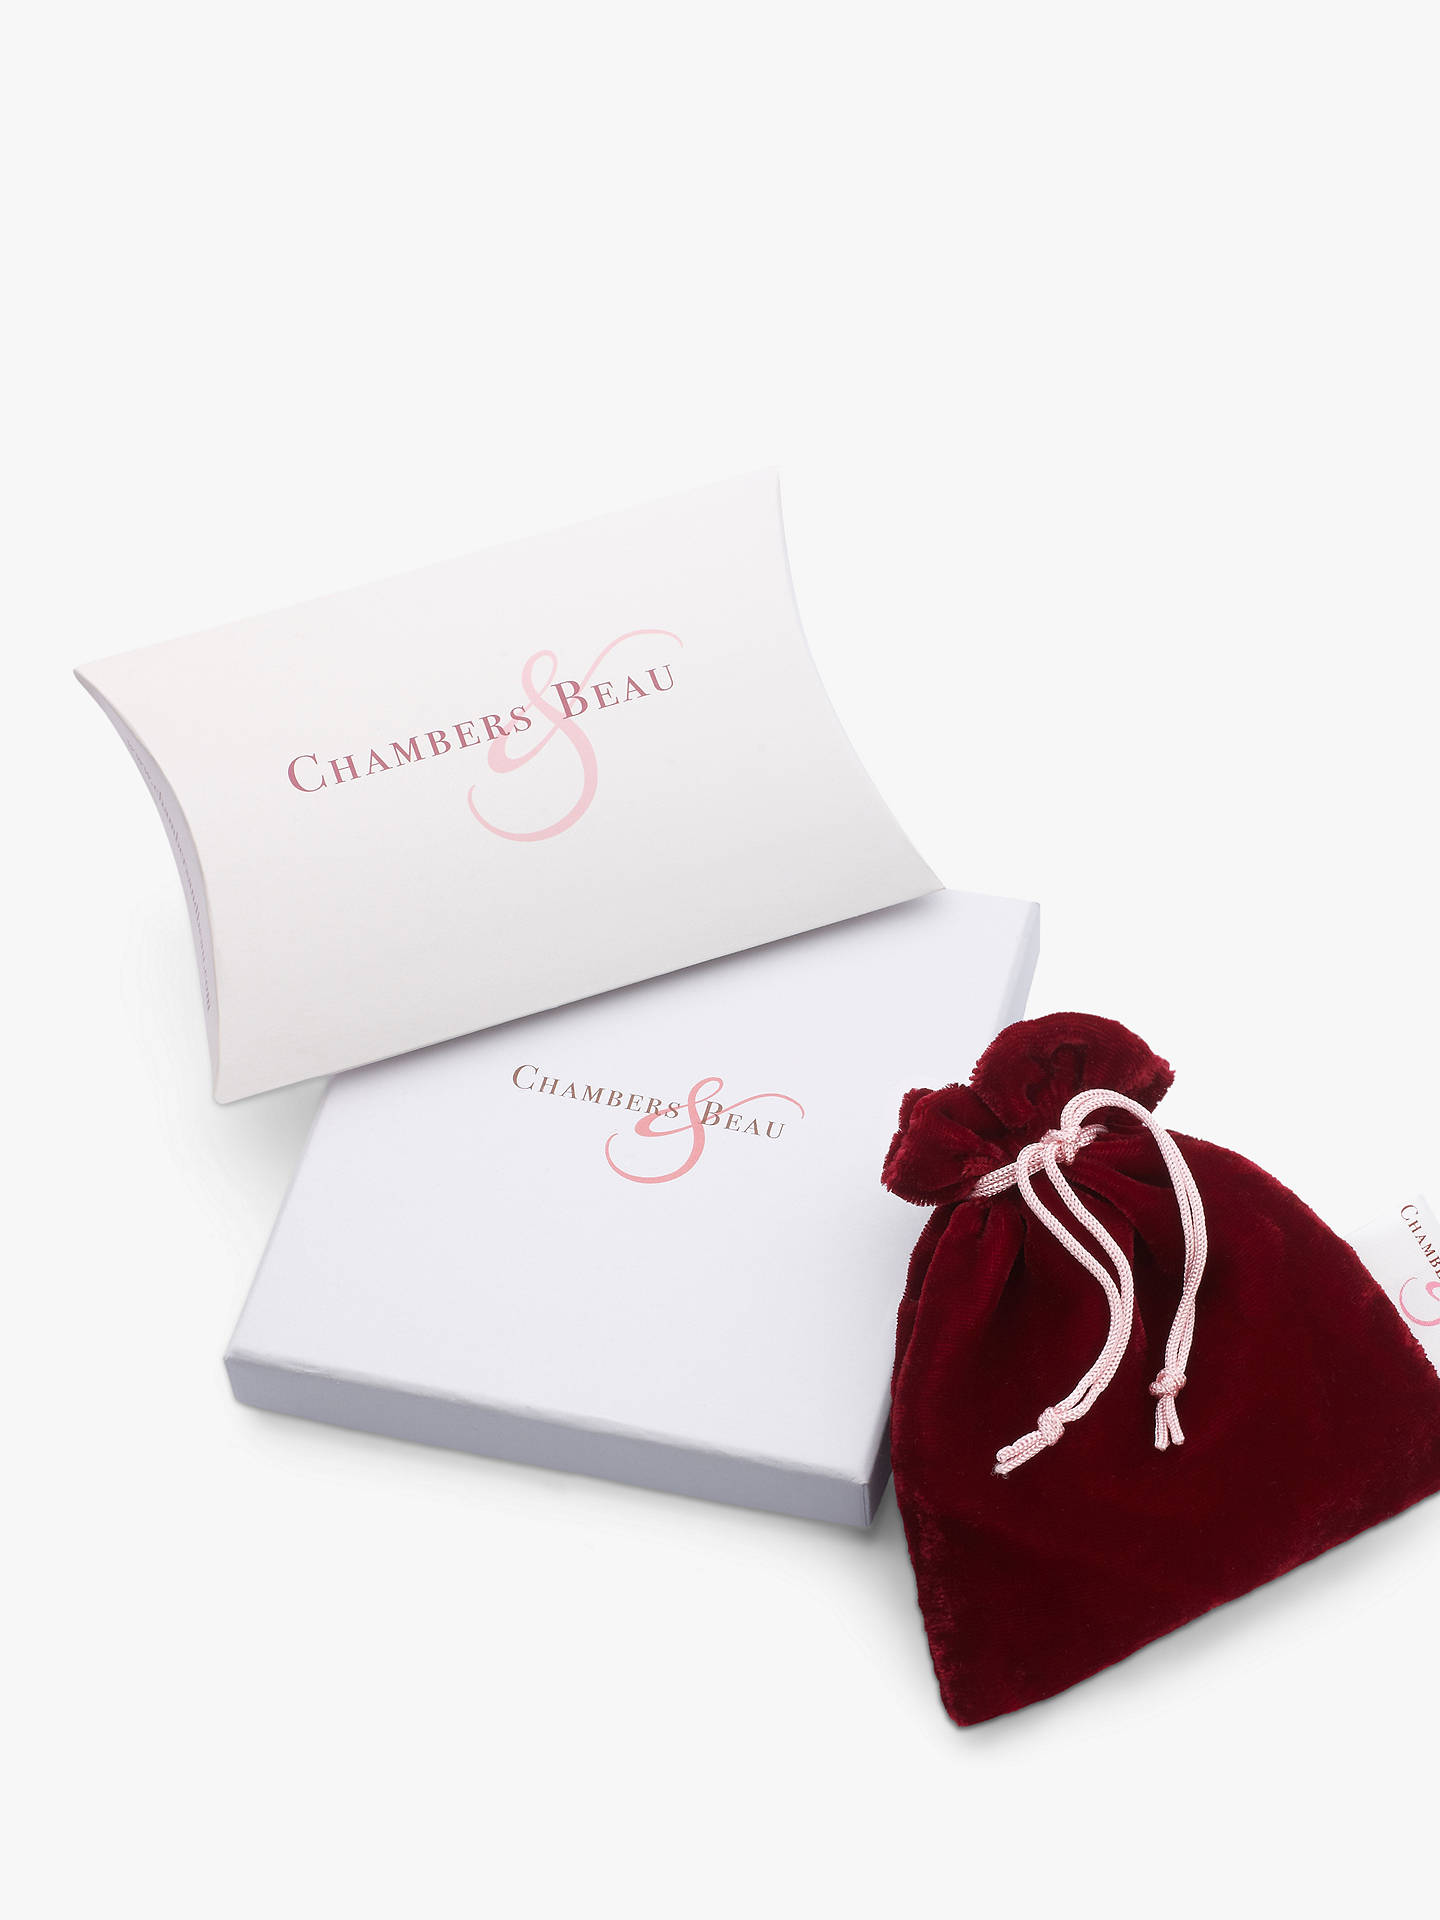 Buy Chambers & Beau Personalised Mini Halo and Star Necklace Online at johnlewis.com